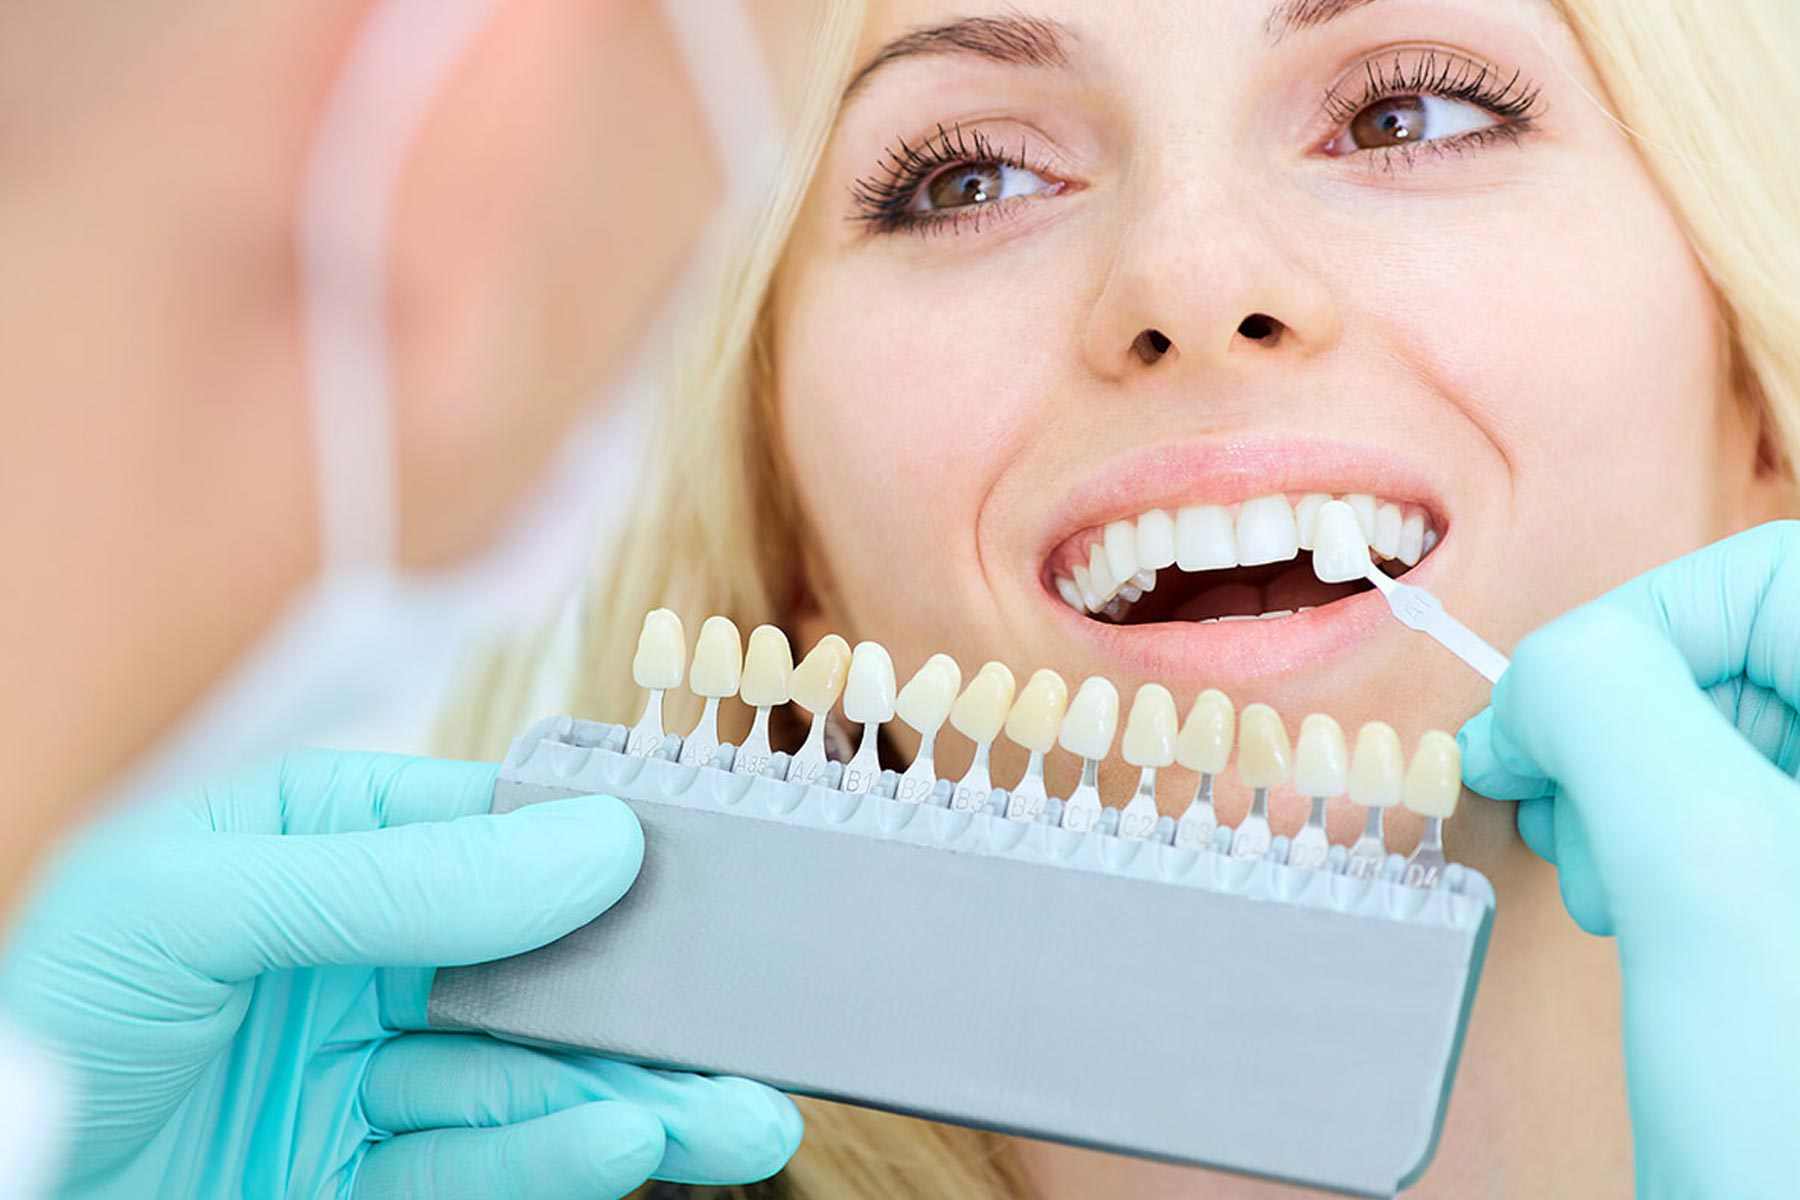 Patient smiling and looking at dentist whilst they shade match their teeth for bespoke veneers